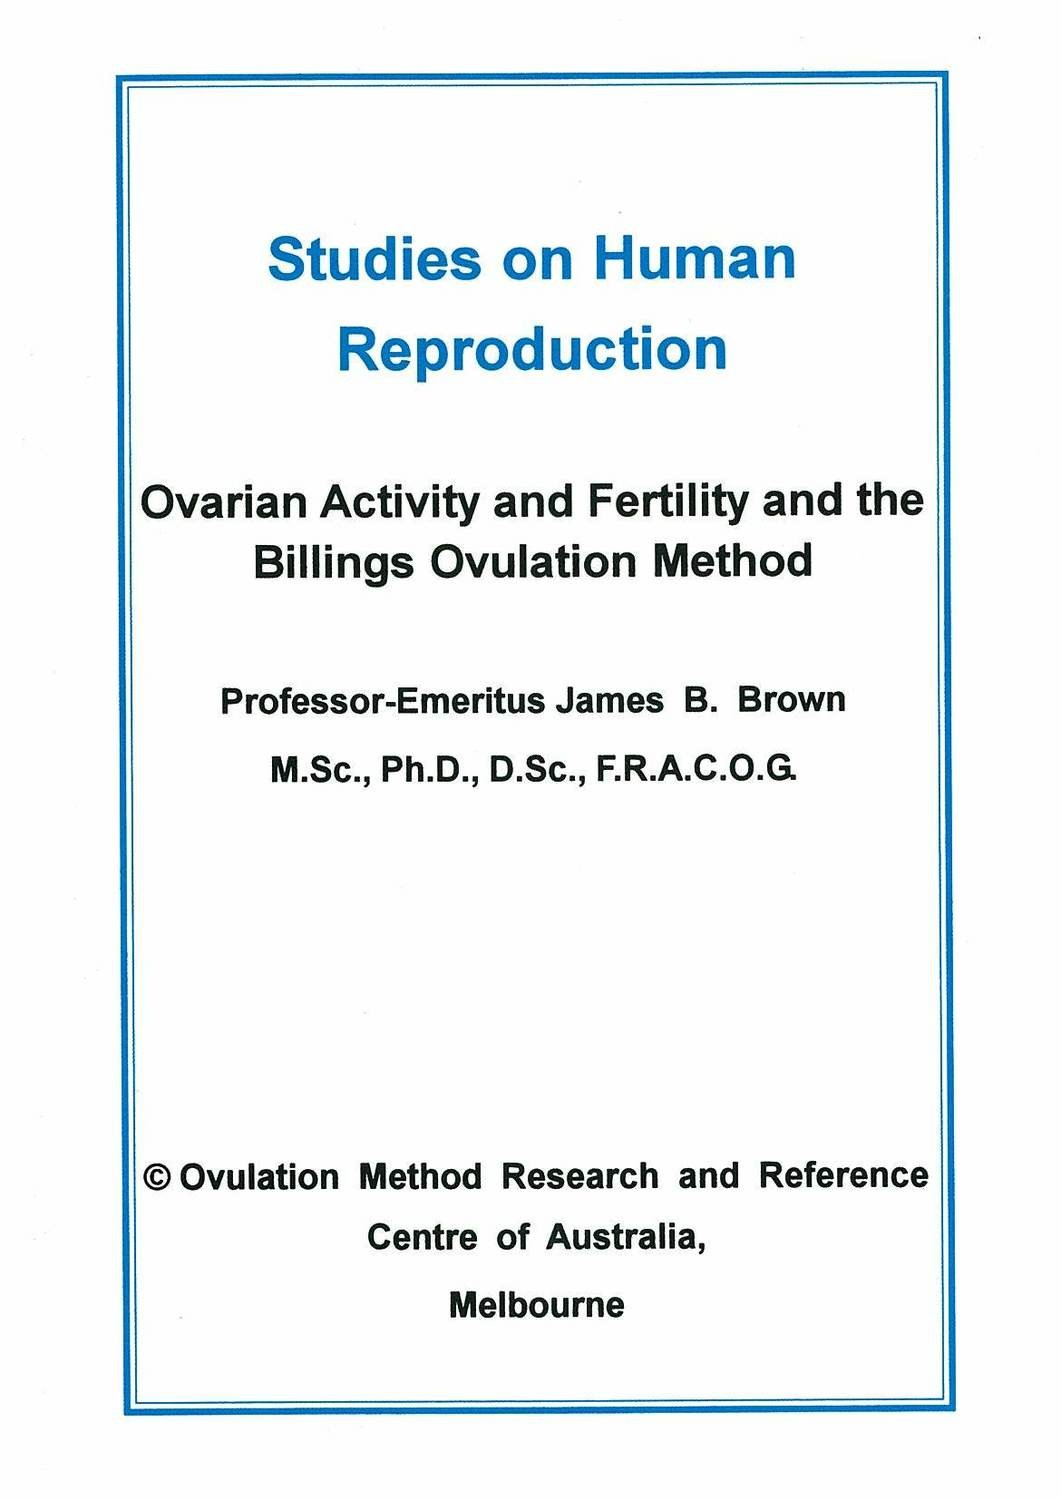 Studies on Human Reproduction by Prof. James Brown